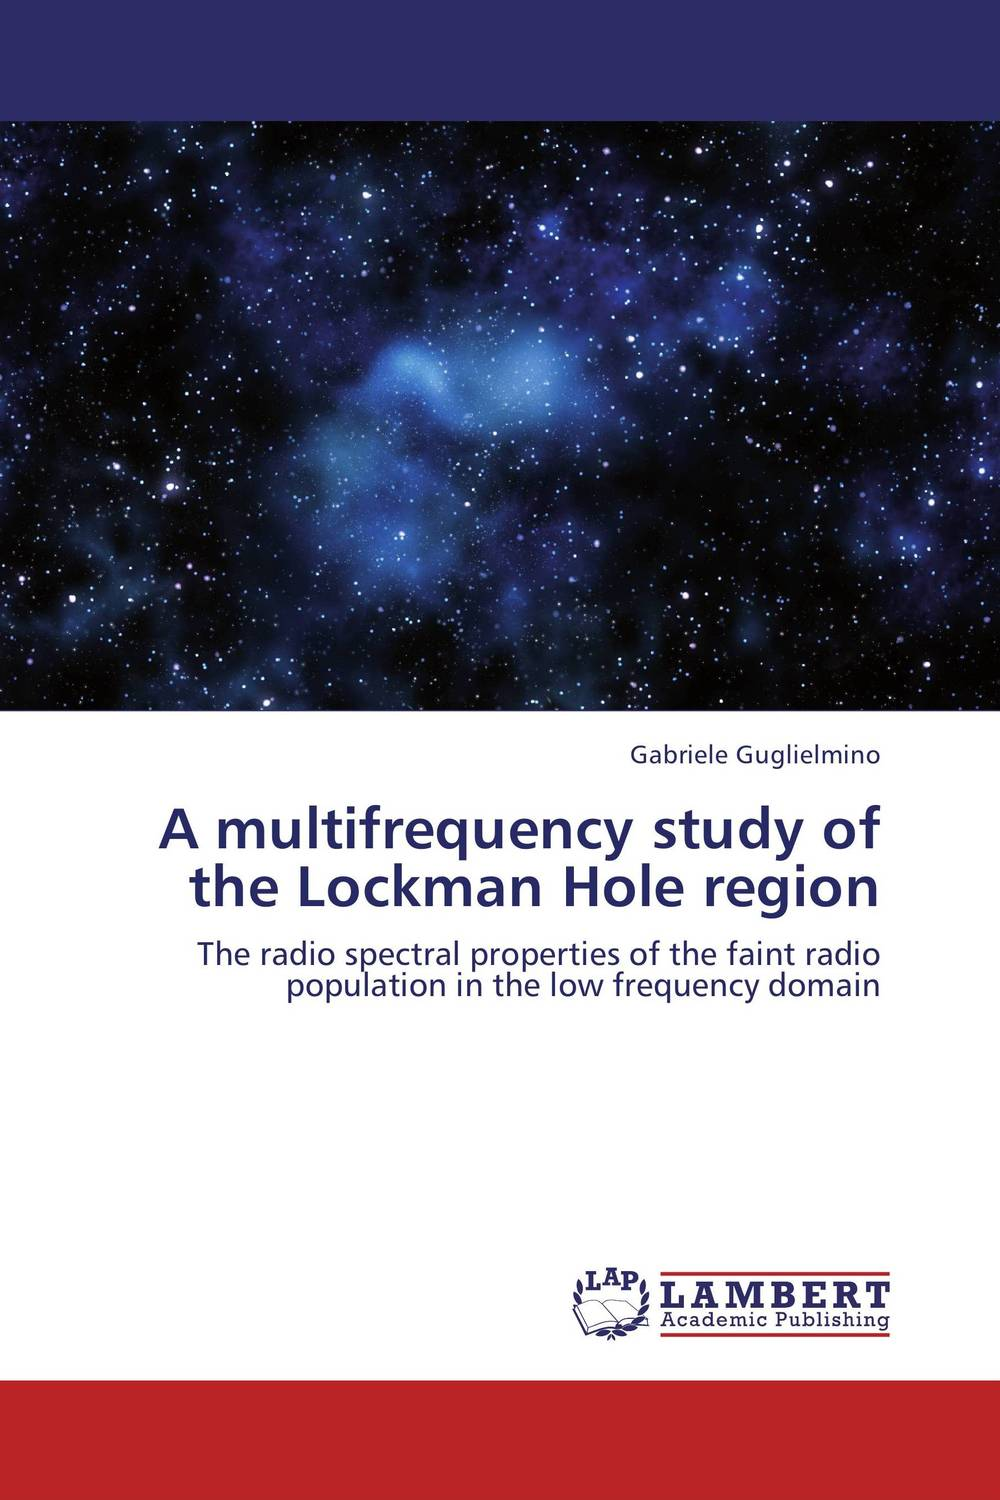 A multifrequency study of the Lockman Hole region the heir